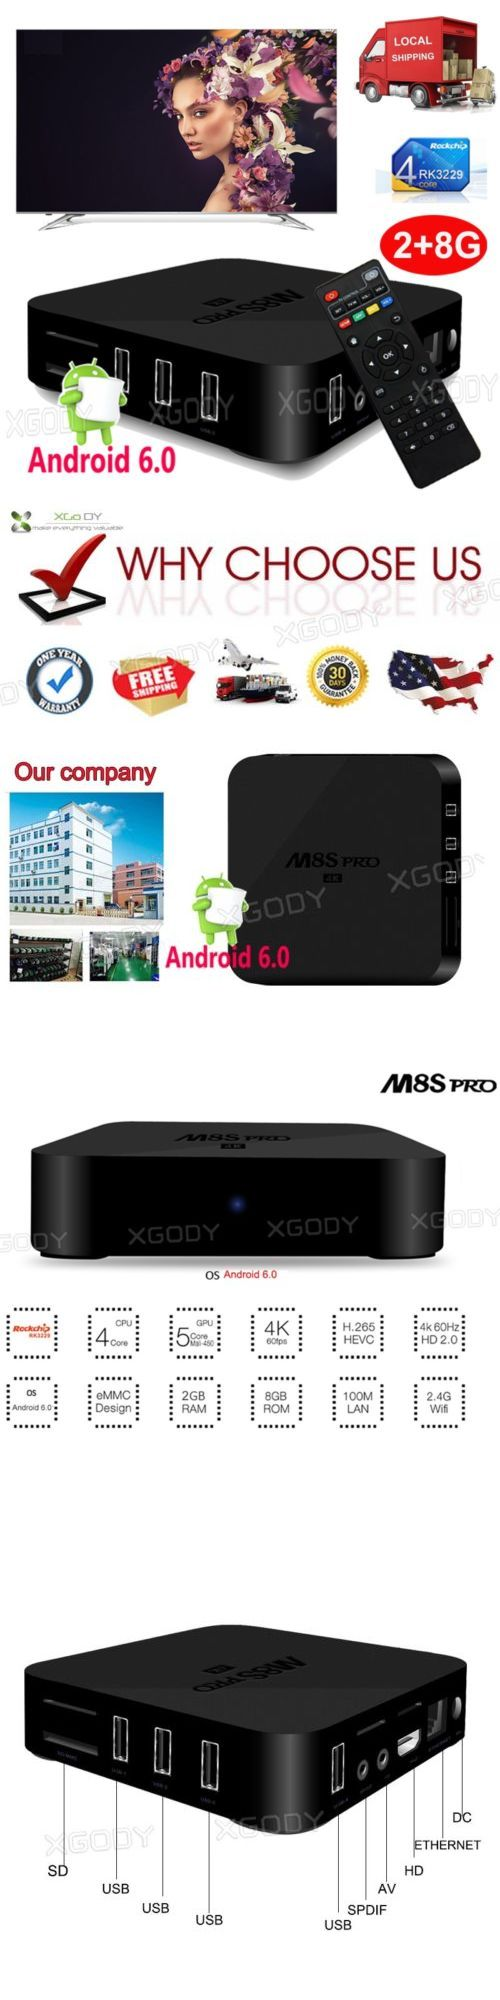 Internet and Media Streamers: Xgody 2Gb 8Gb Quad Core Android 6.0 M8s Pro New Tv Box Wifi 4K Movies Hdmi Wifi -> BUY IT NOW ONLY: $37.94 on eBay!